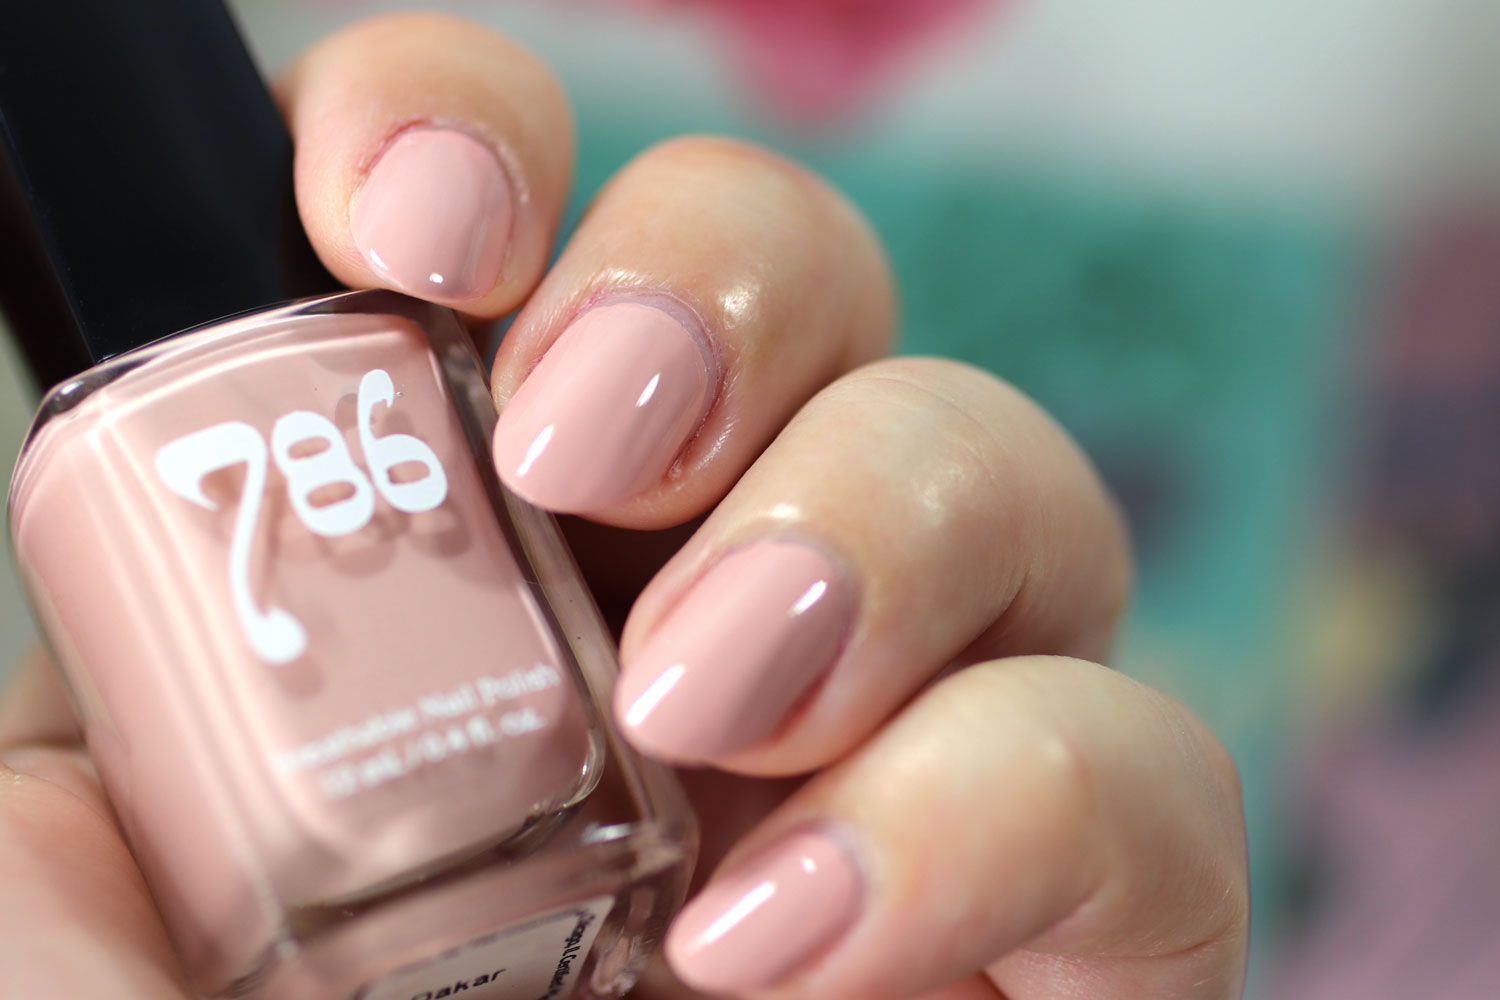 786 Cosmetics Breathable Cruelty Free and Vegan Nail Polish Swatch - Dakar